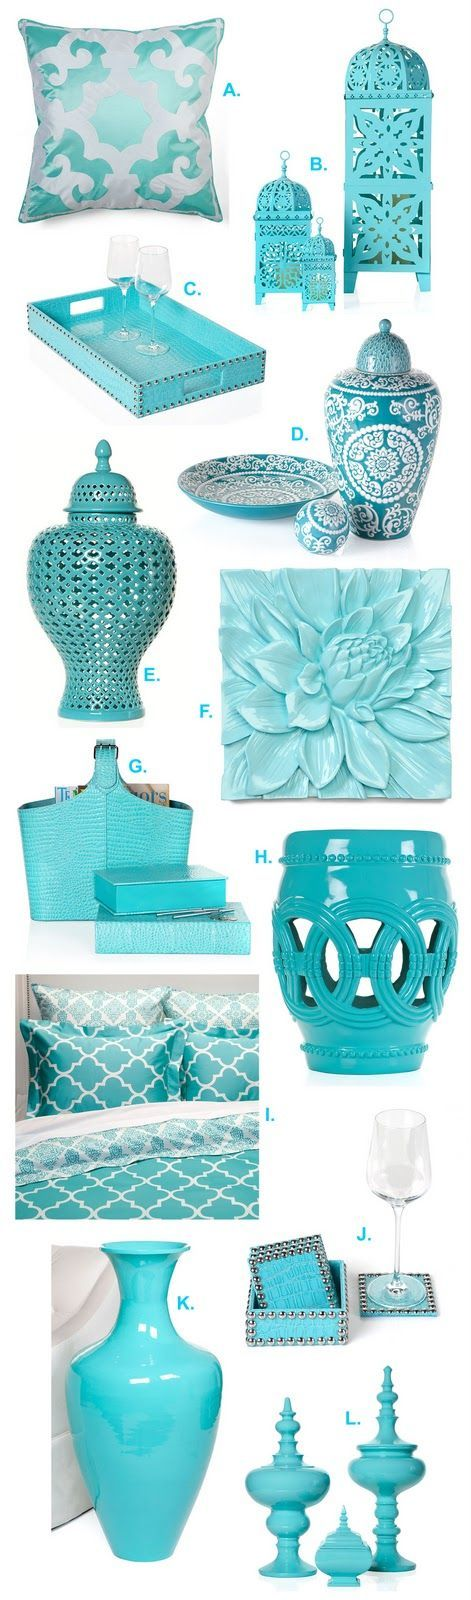 1000 ideas about teal kitchen decor on pinterest teal kitchen teal and turquoise kitchen - Blue home decor accessories ...